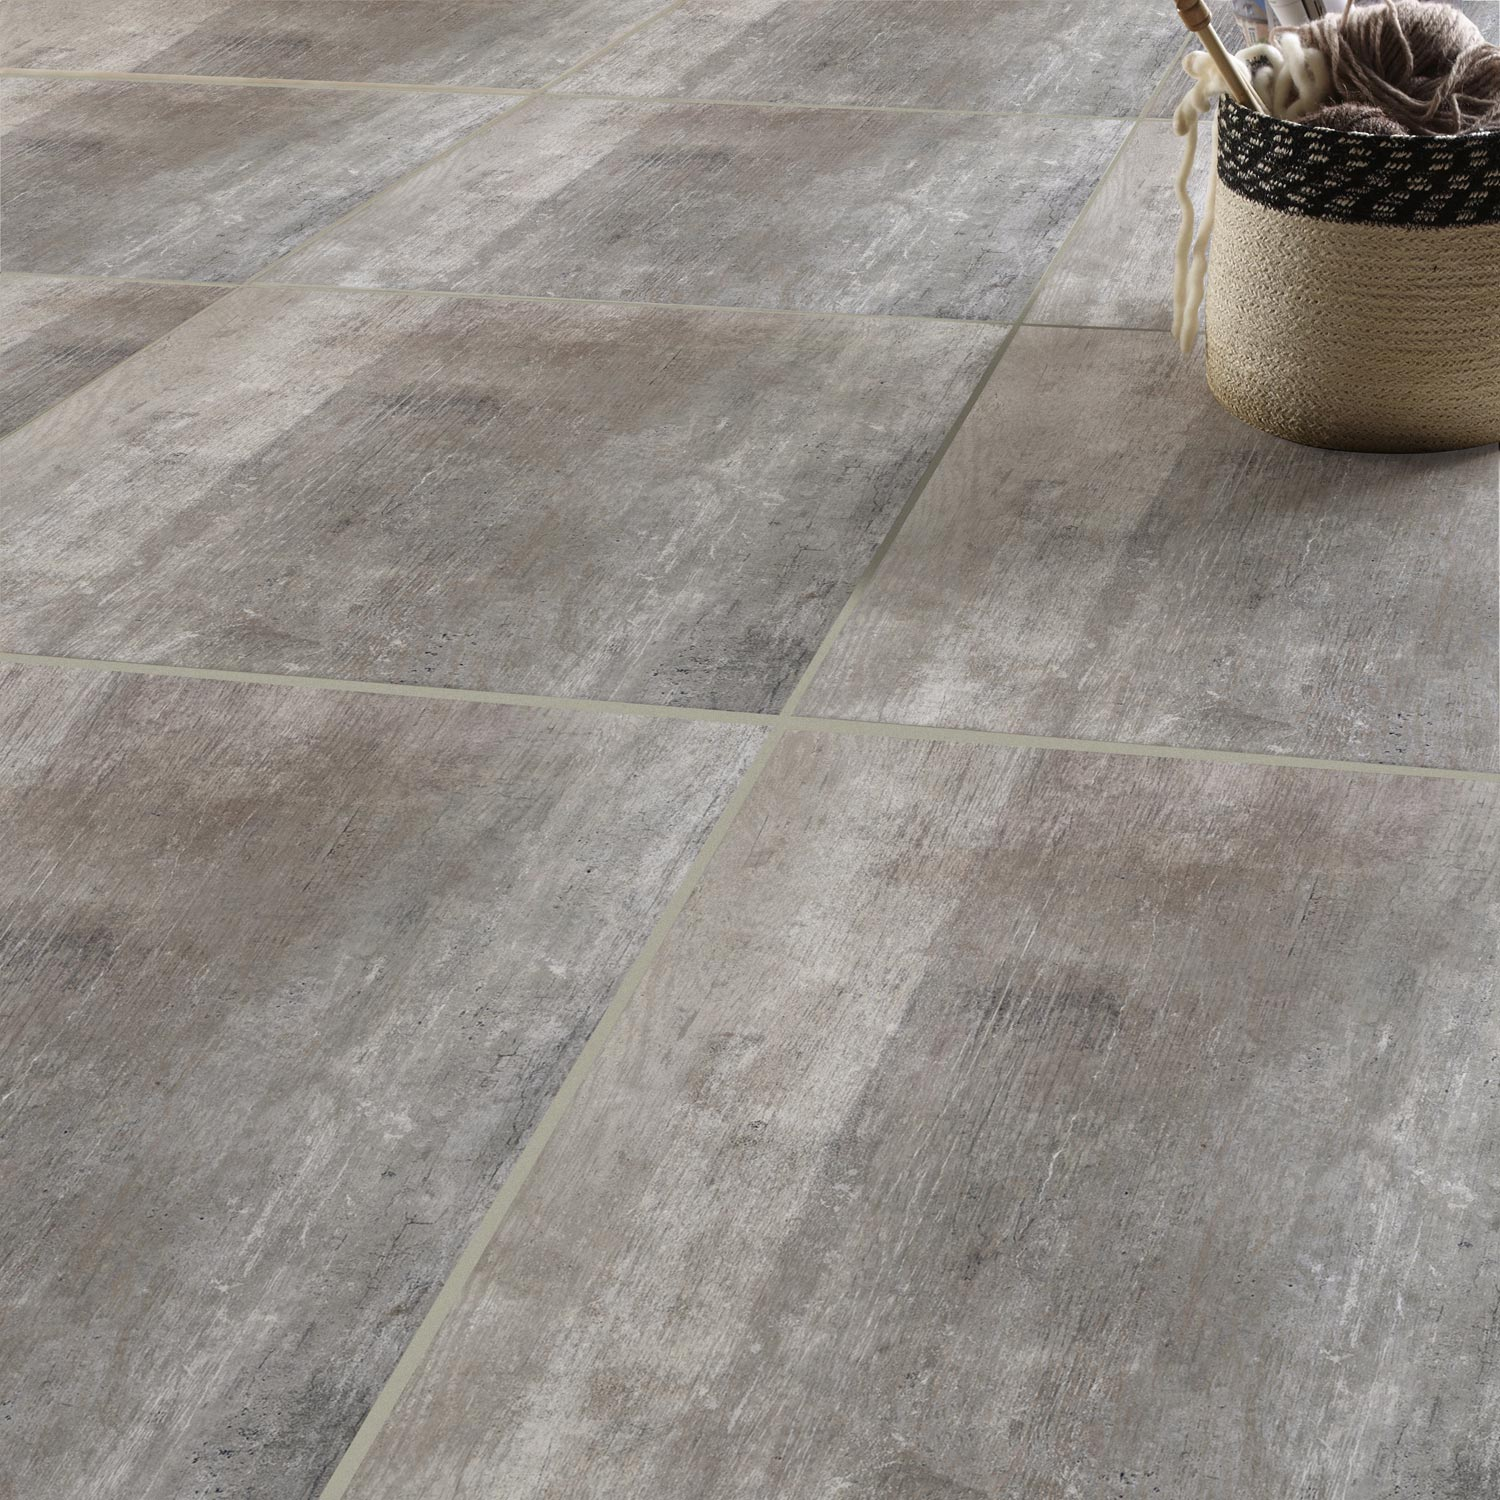 Carrelage gris 25x25 for Carrelage imitation bois exterieur